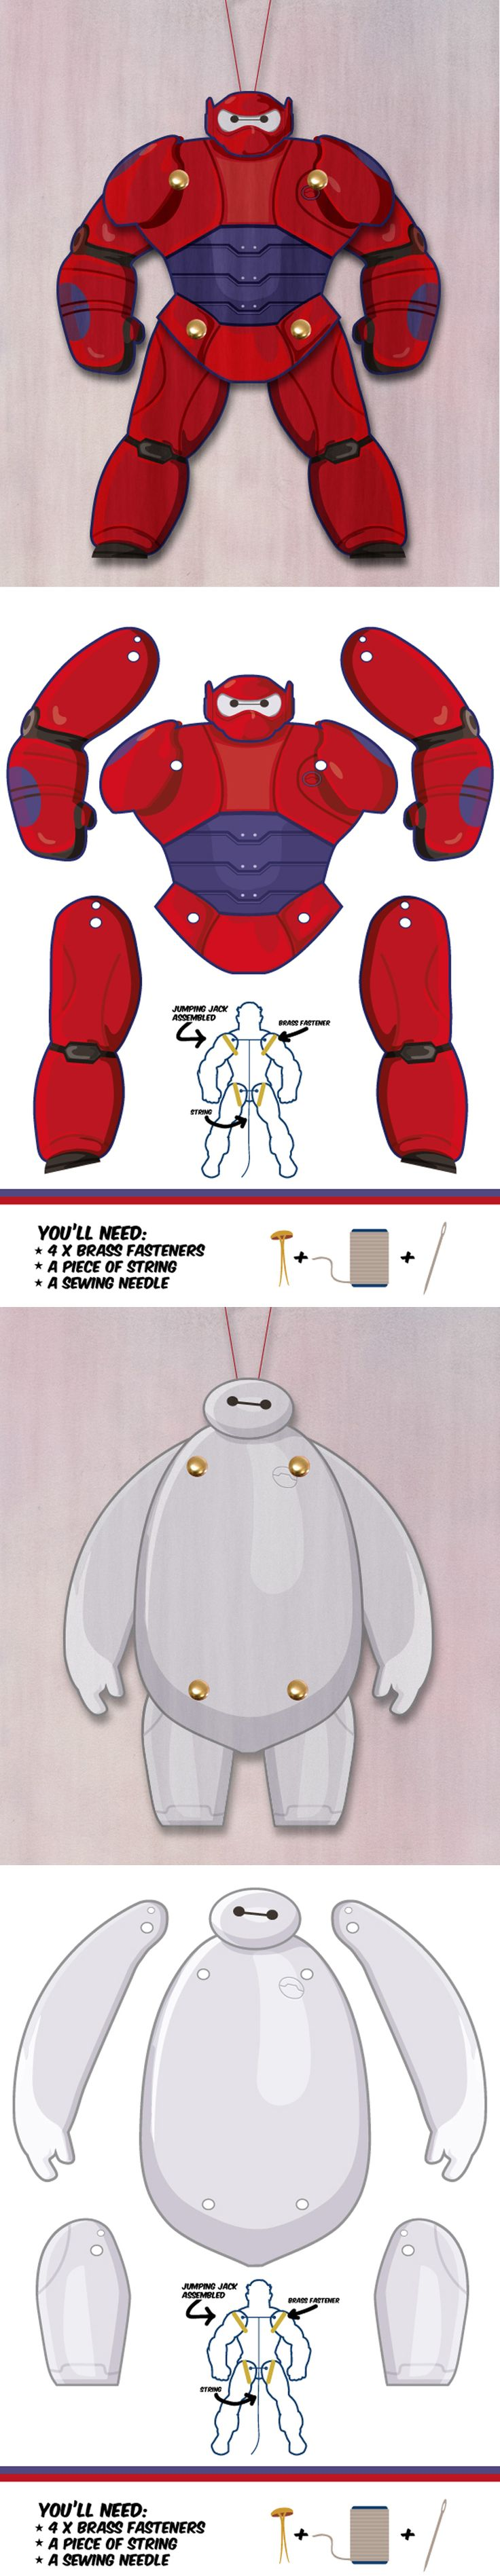 Muñeco de papel articulado. Plantilla para descargar gratis - Baymax from Big hero 6 as a Jumping Jack. Dowload template free. Another cool superhero puppet.